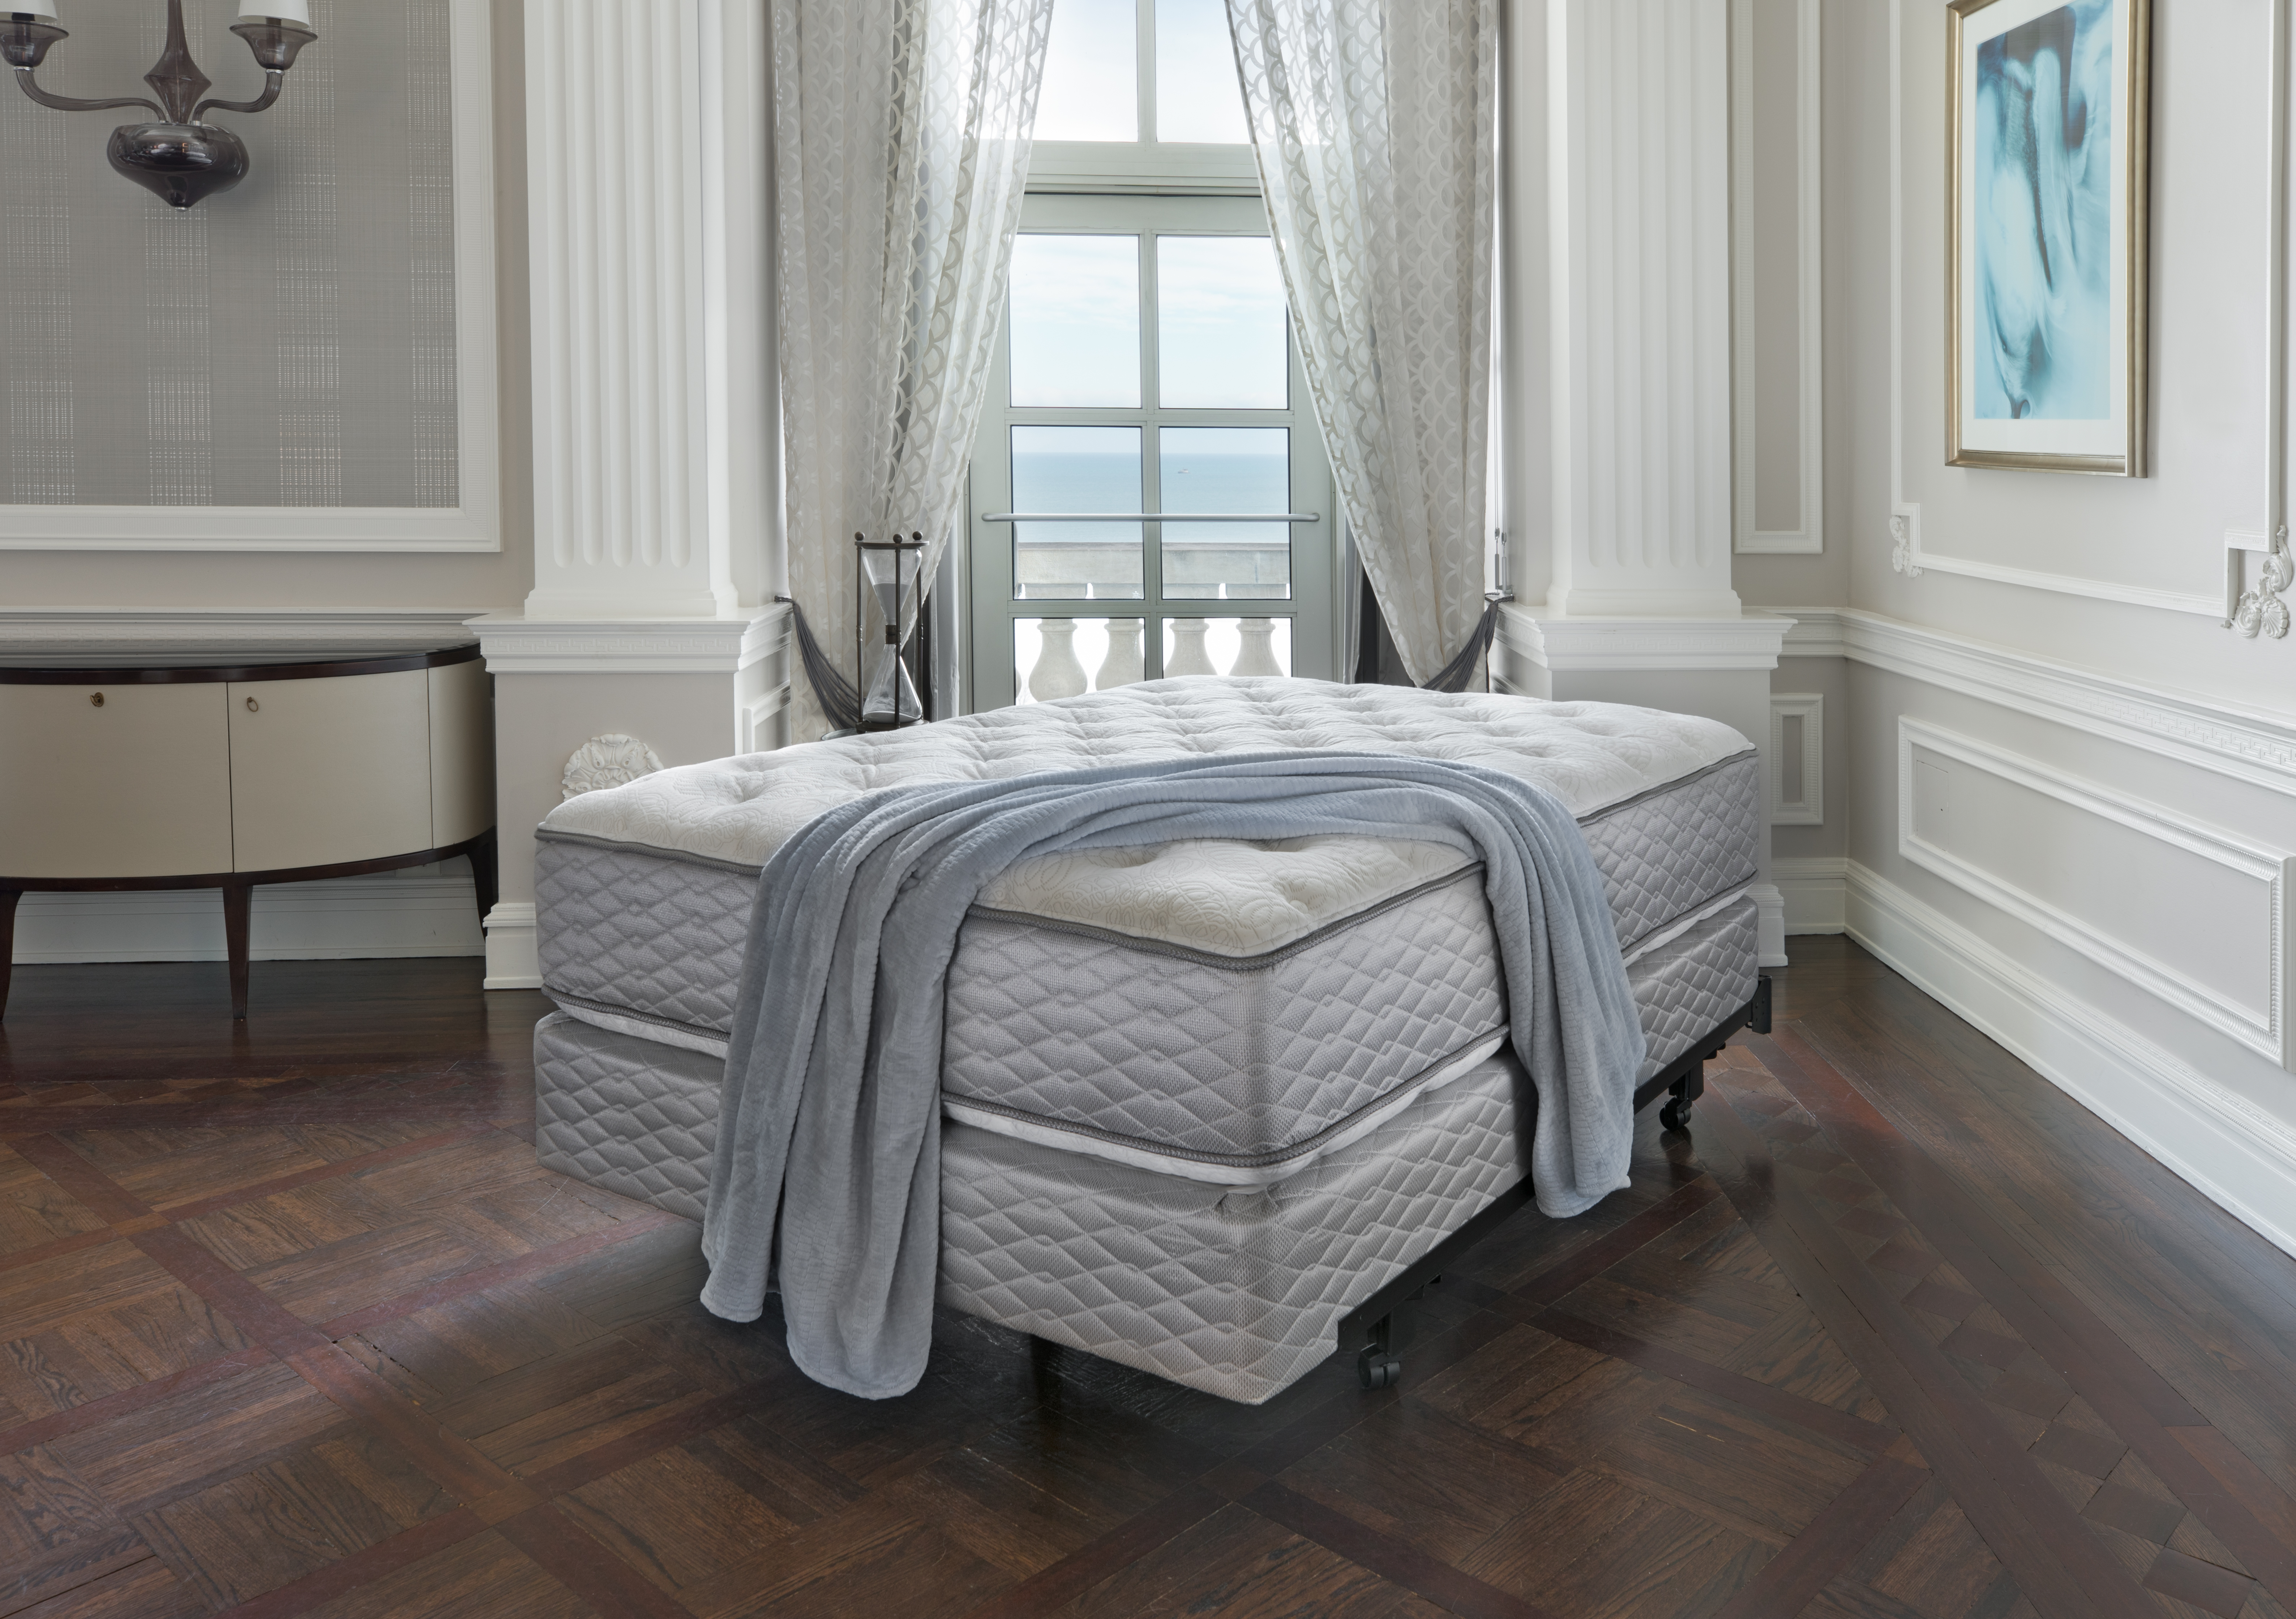 Serta's innerspring mattress is made with a steel coil innerspring support system, with foams and fibers on top.